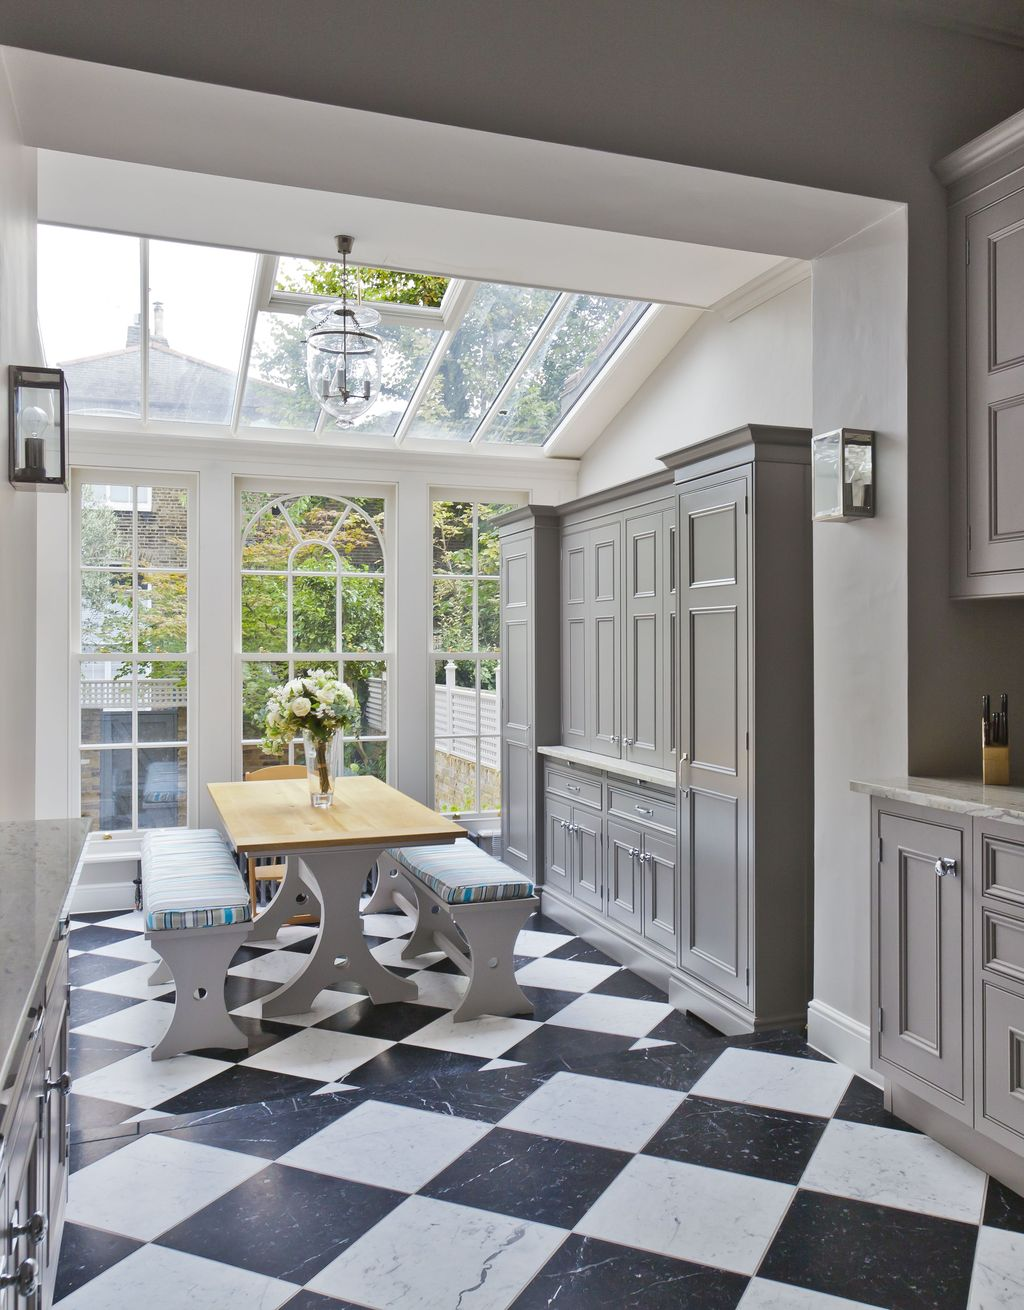 Admirable Sunroom Design Ideas You Must Have 24